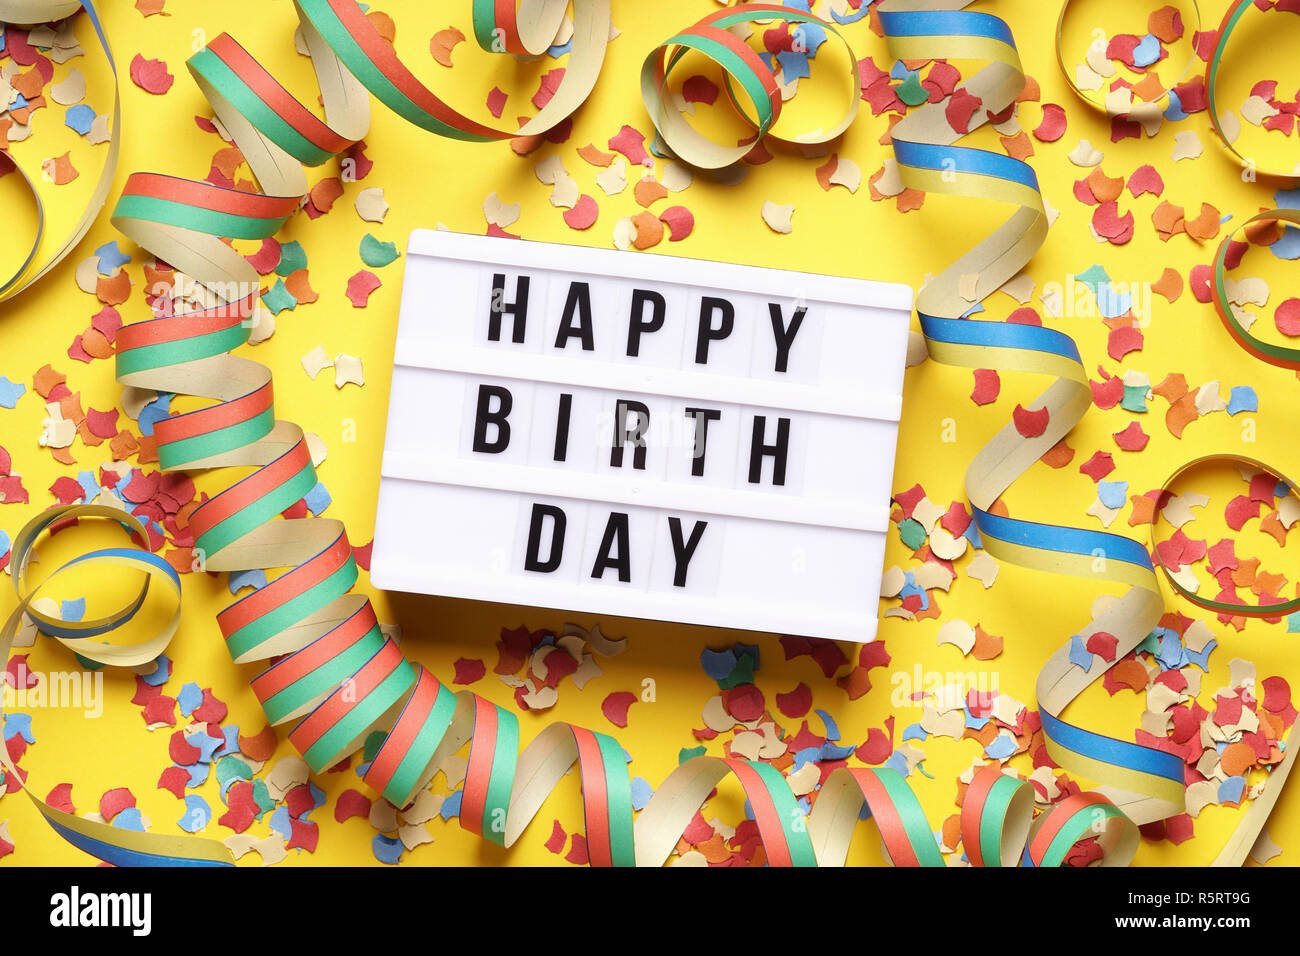 happy birthday party celebration flat lay with confetti and streamers on yellow background - Stock Image